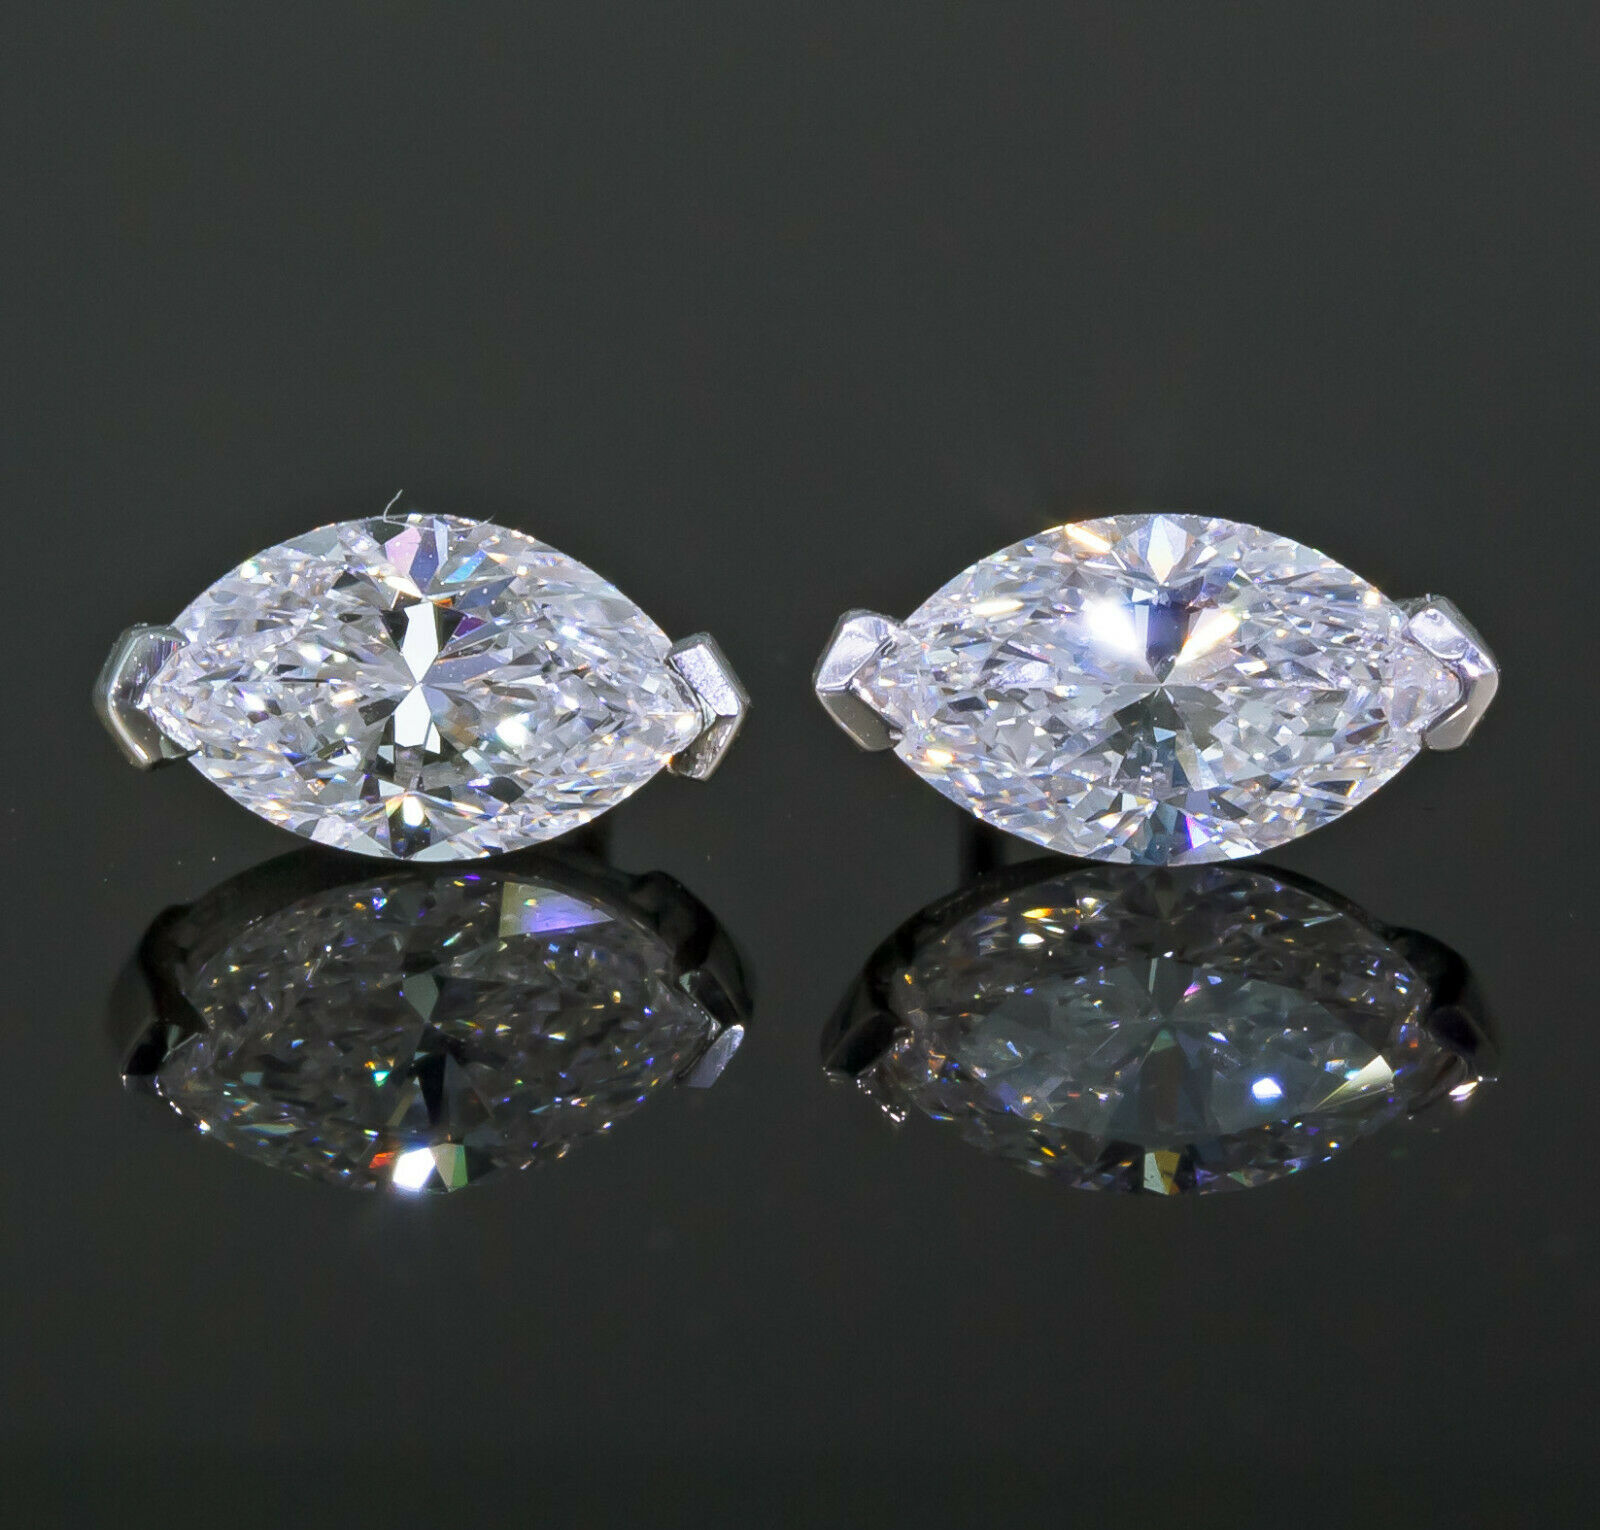 GIA Certified 1.40 carat Marquise-cut Diamond Stud Earrings White Gold 1-1/2 ct